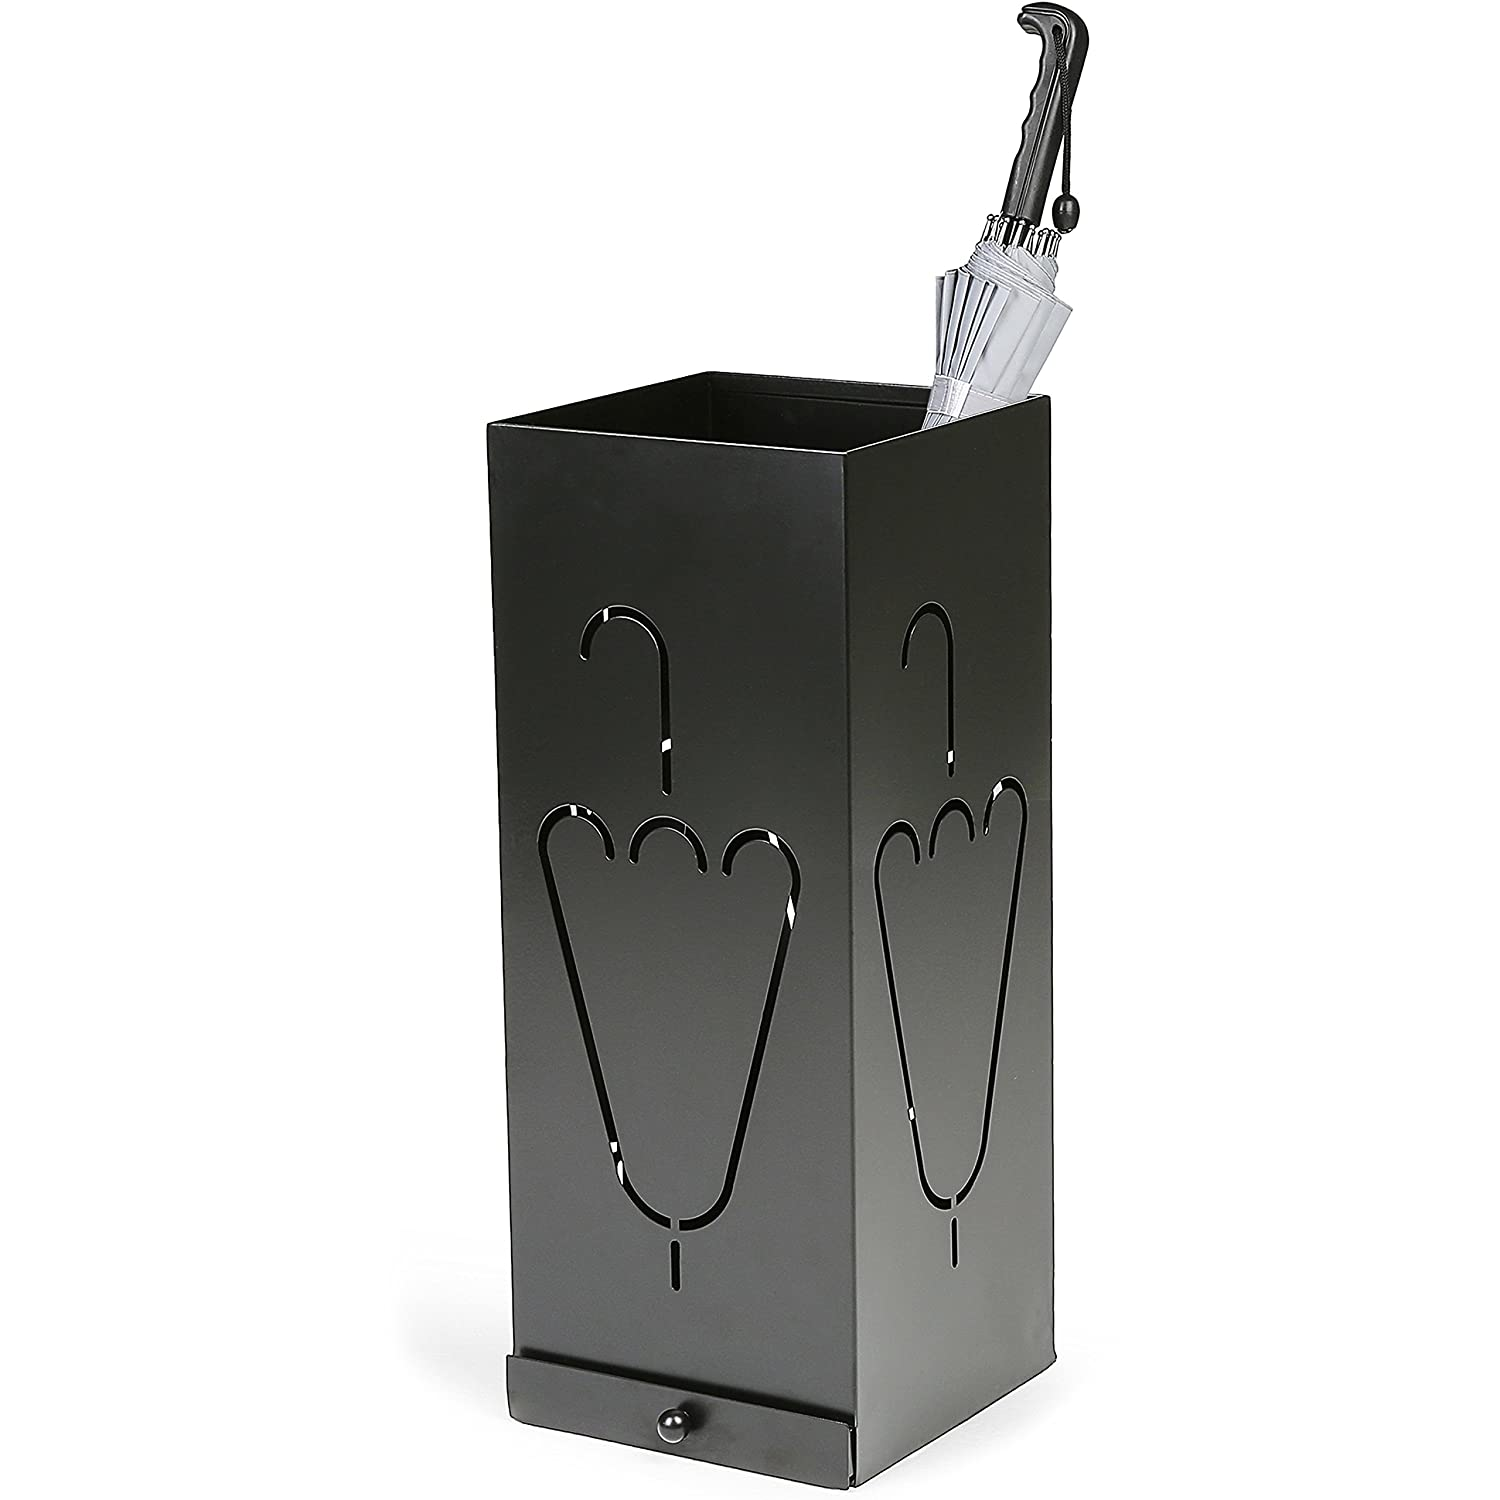 Laser Cut Design Black Metal Umbrella Stand with Removable Drip Tray B06XHBL3JF